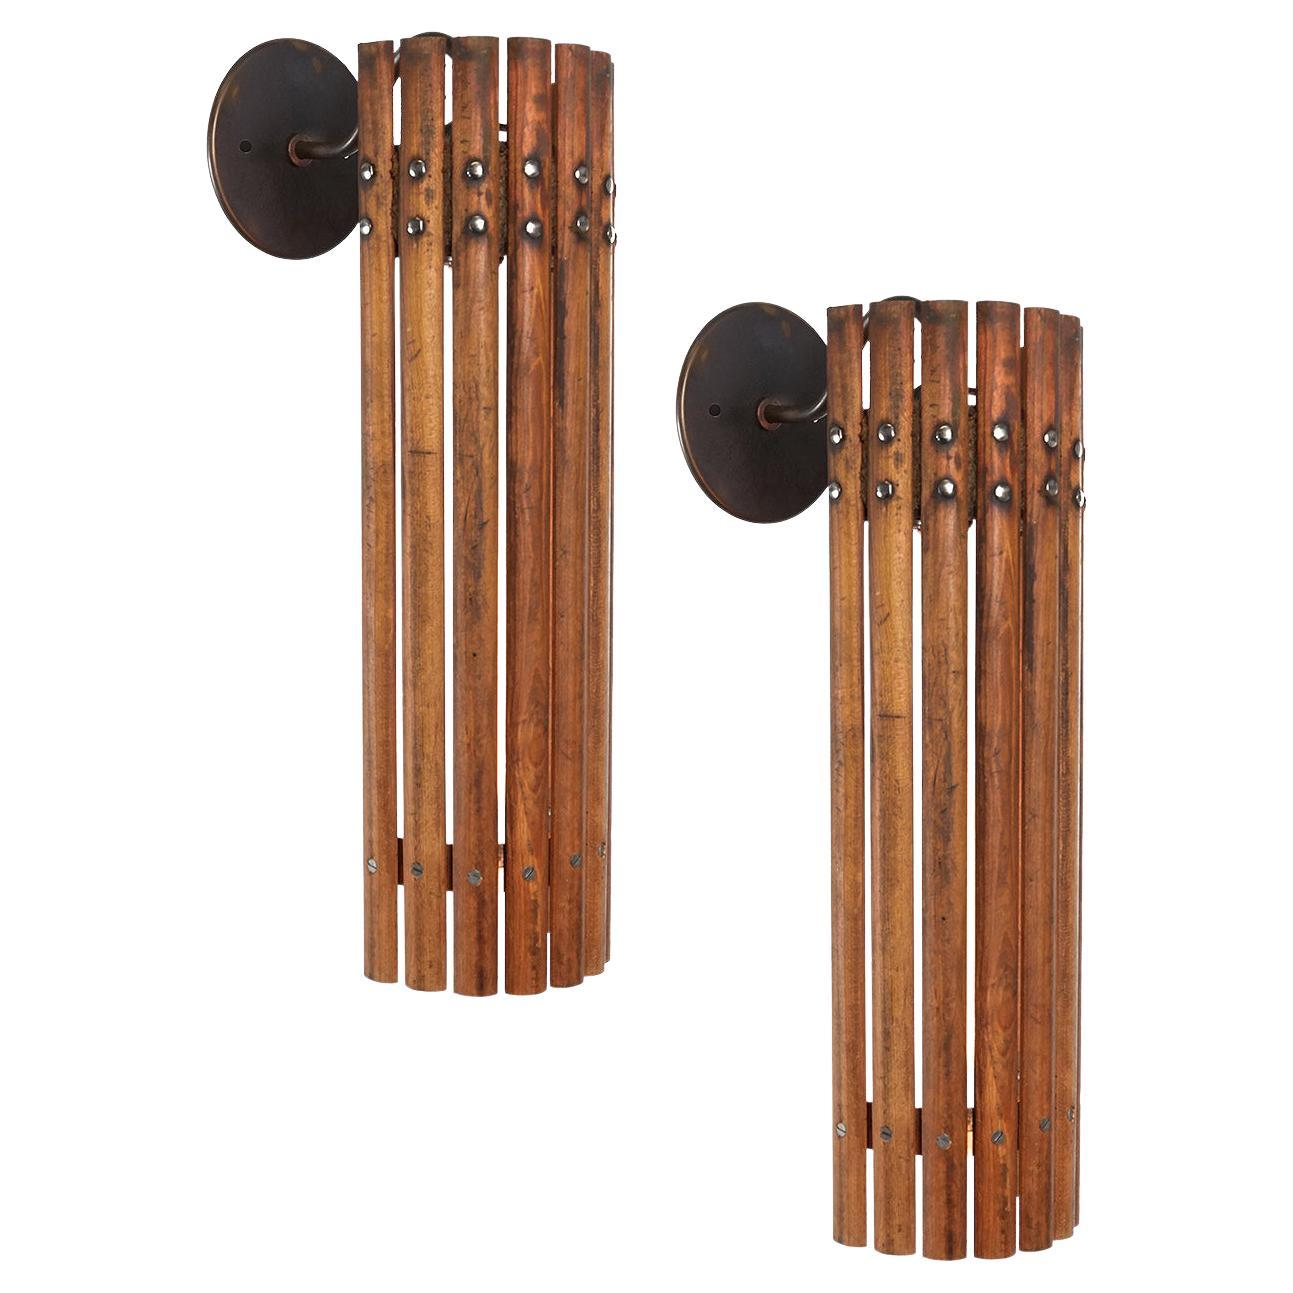 Tambour Wood Sconce